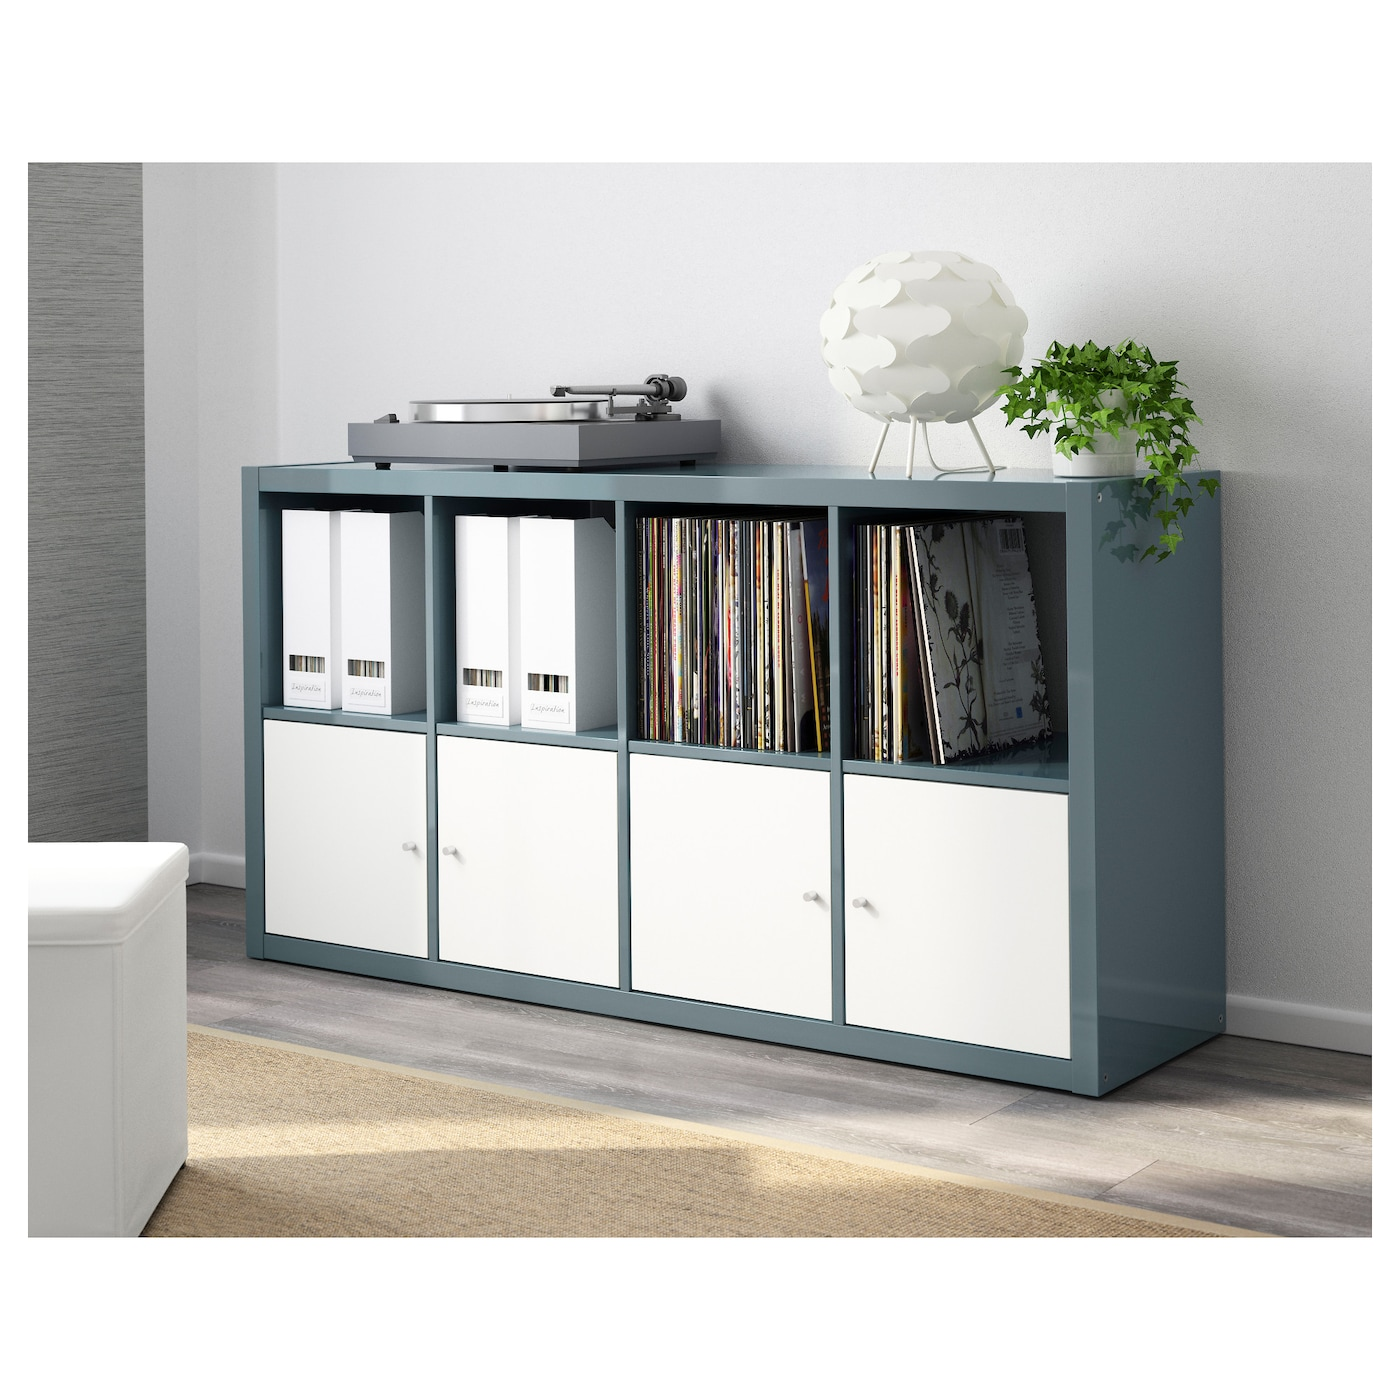 kallax shelving unit high gloss grey turquoise 77 x 147 cm. Black Bedroom Furniture Sets. Home Design Ideas